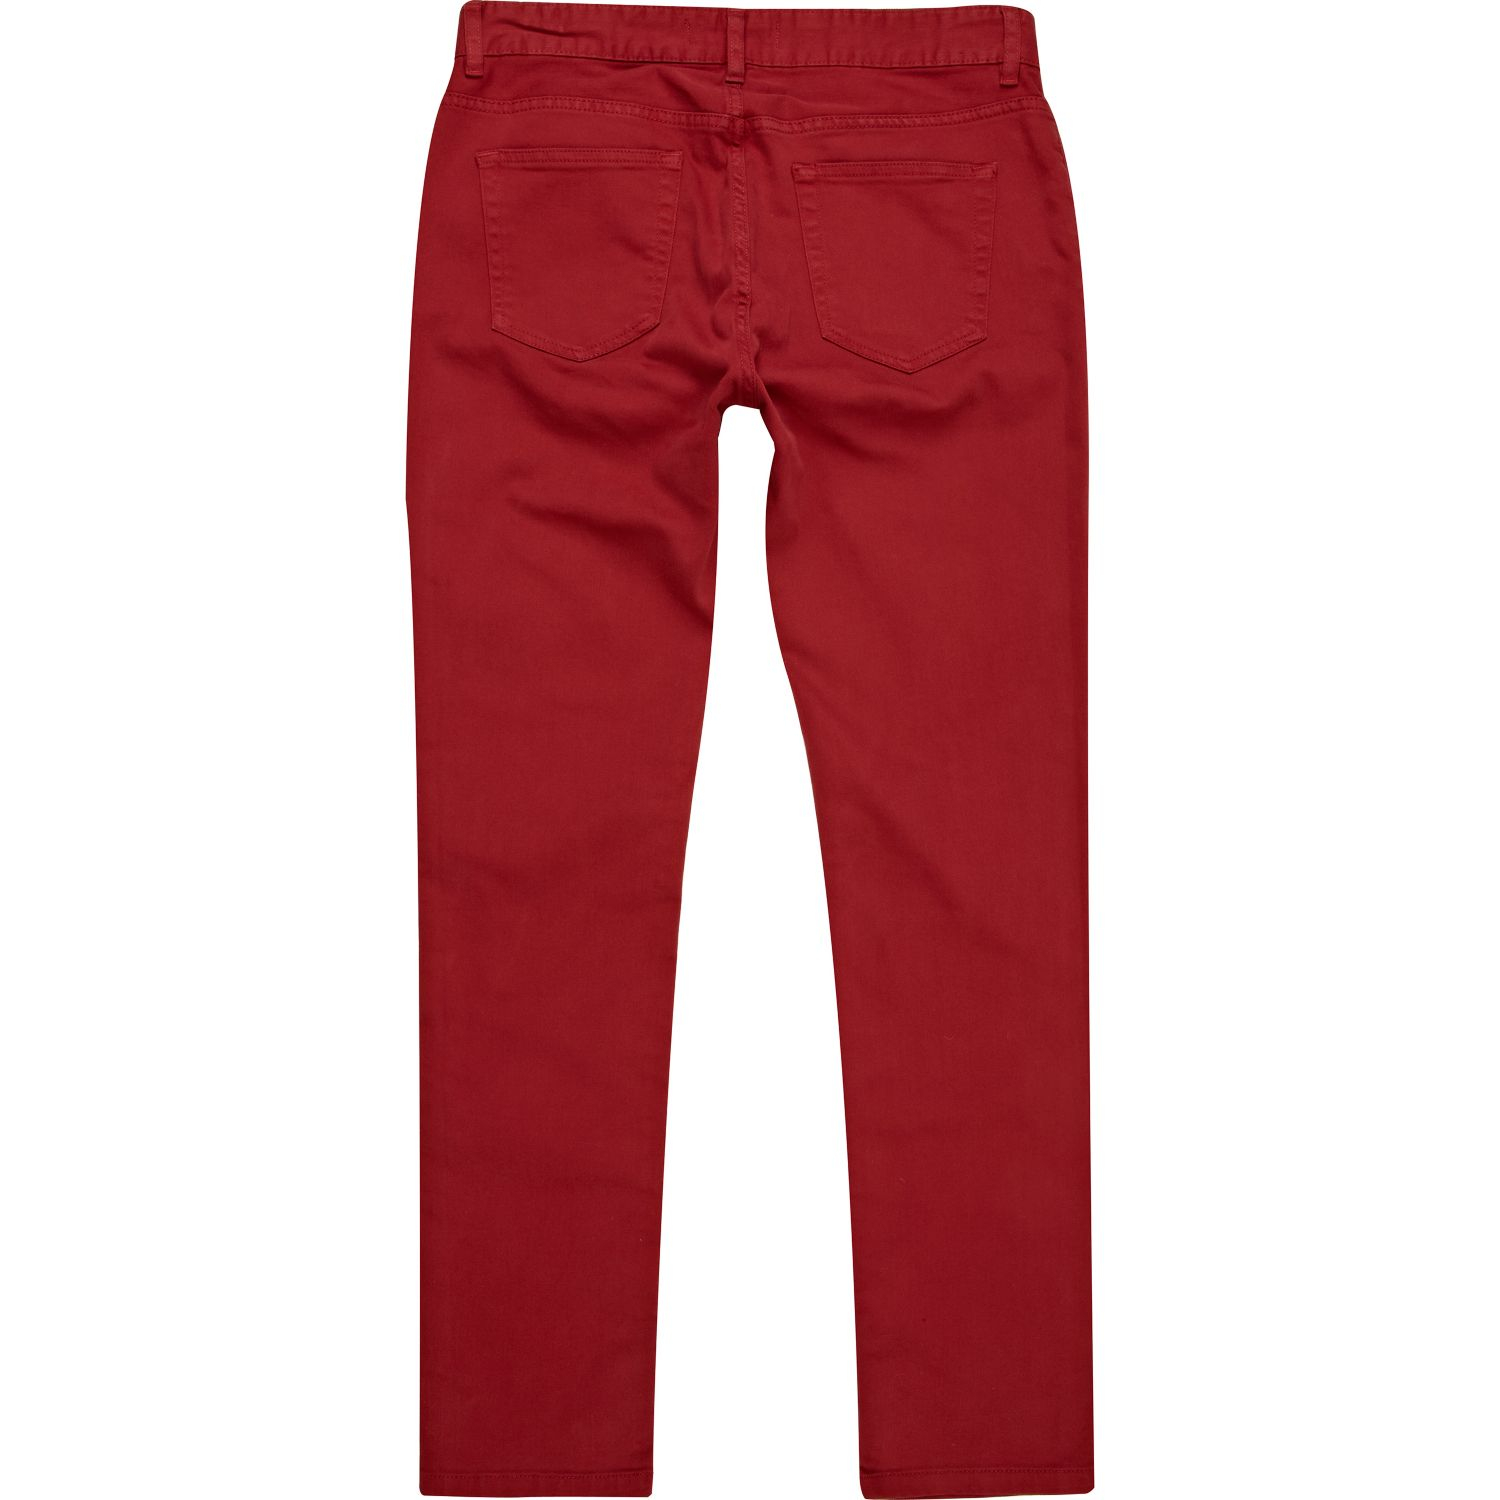 Find great deals on eBay for red denim skinny jeans. Shop with confidence.